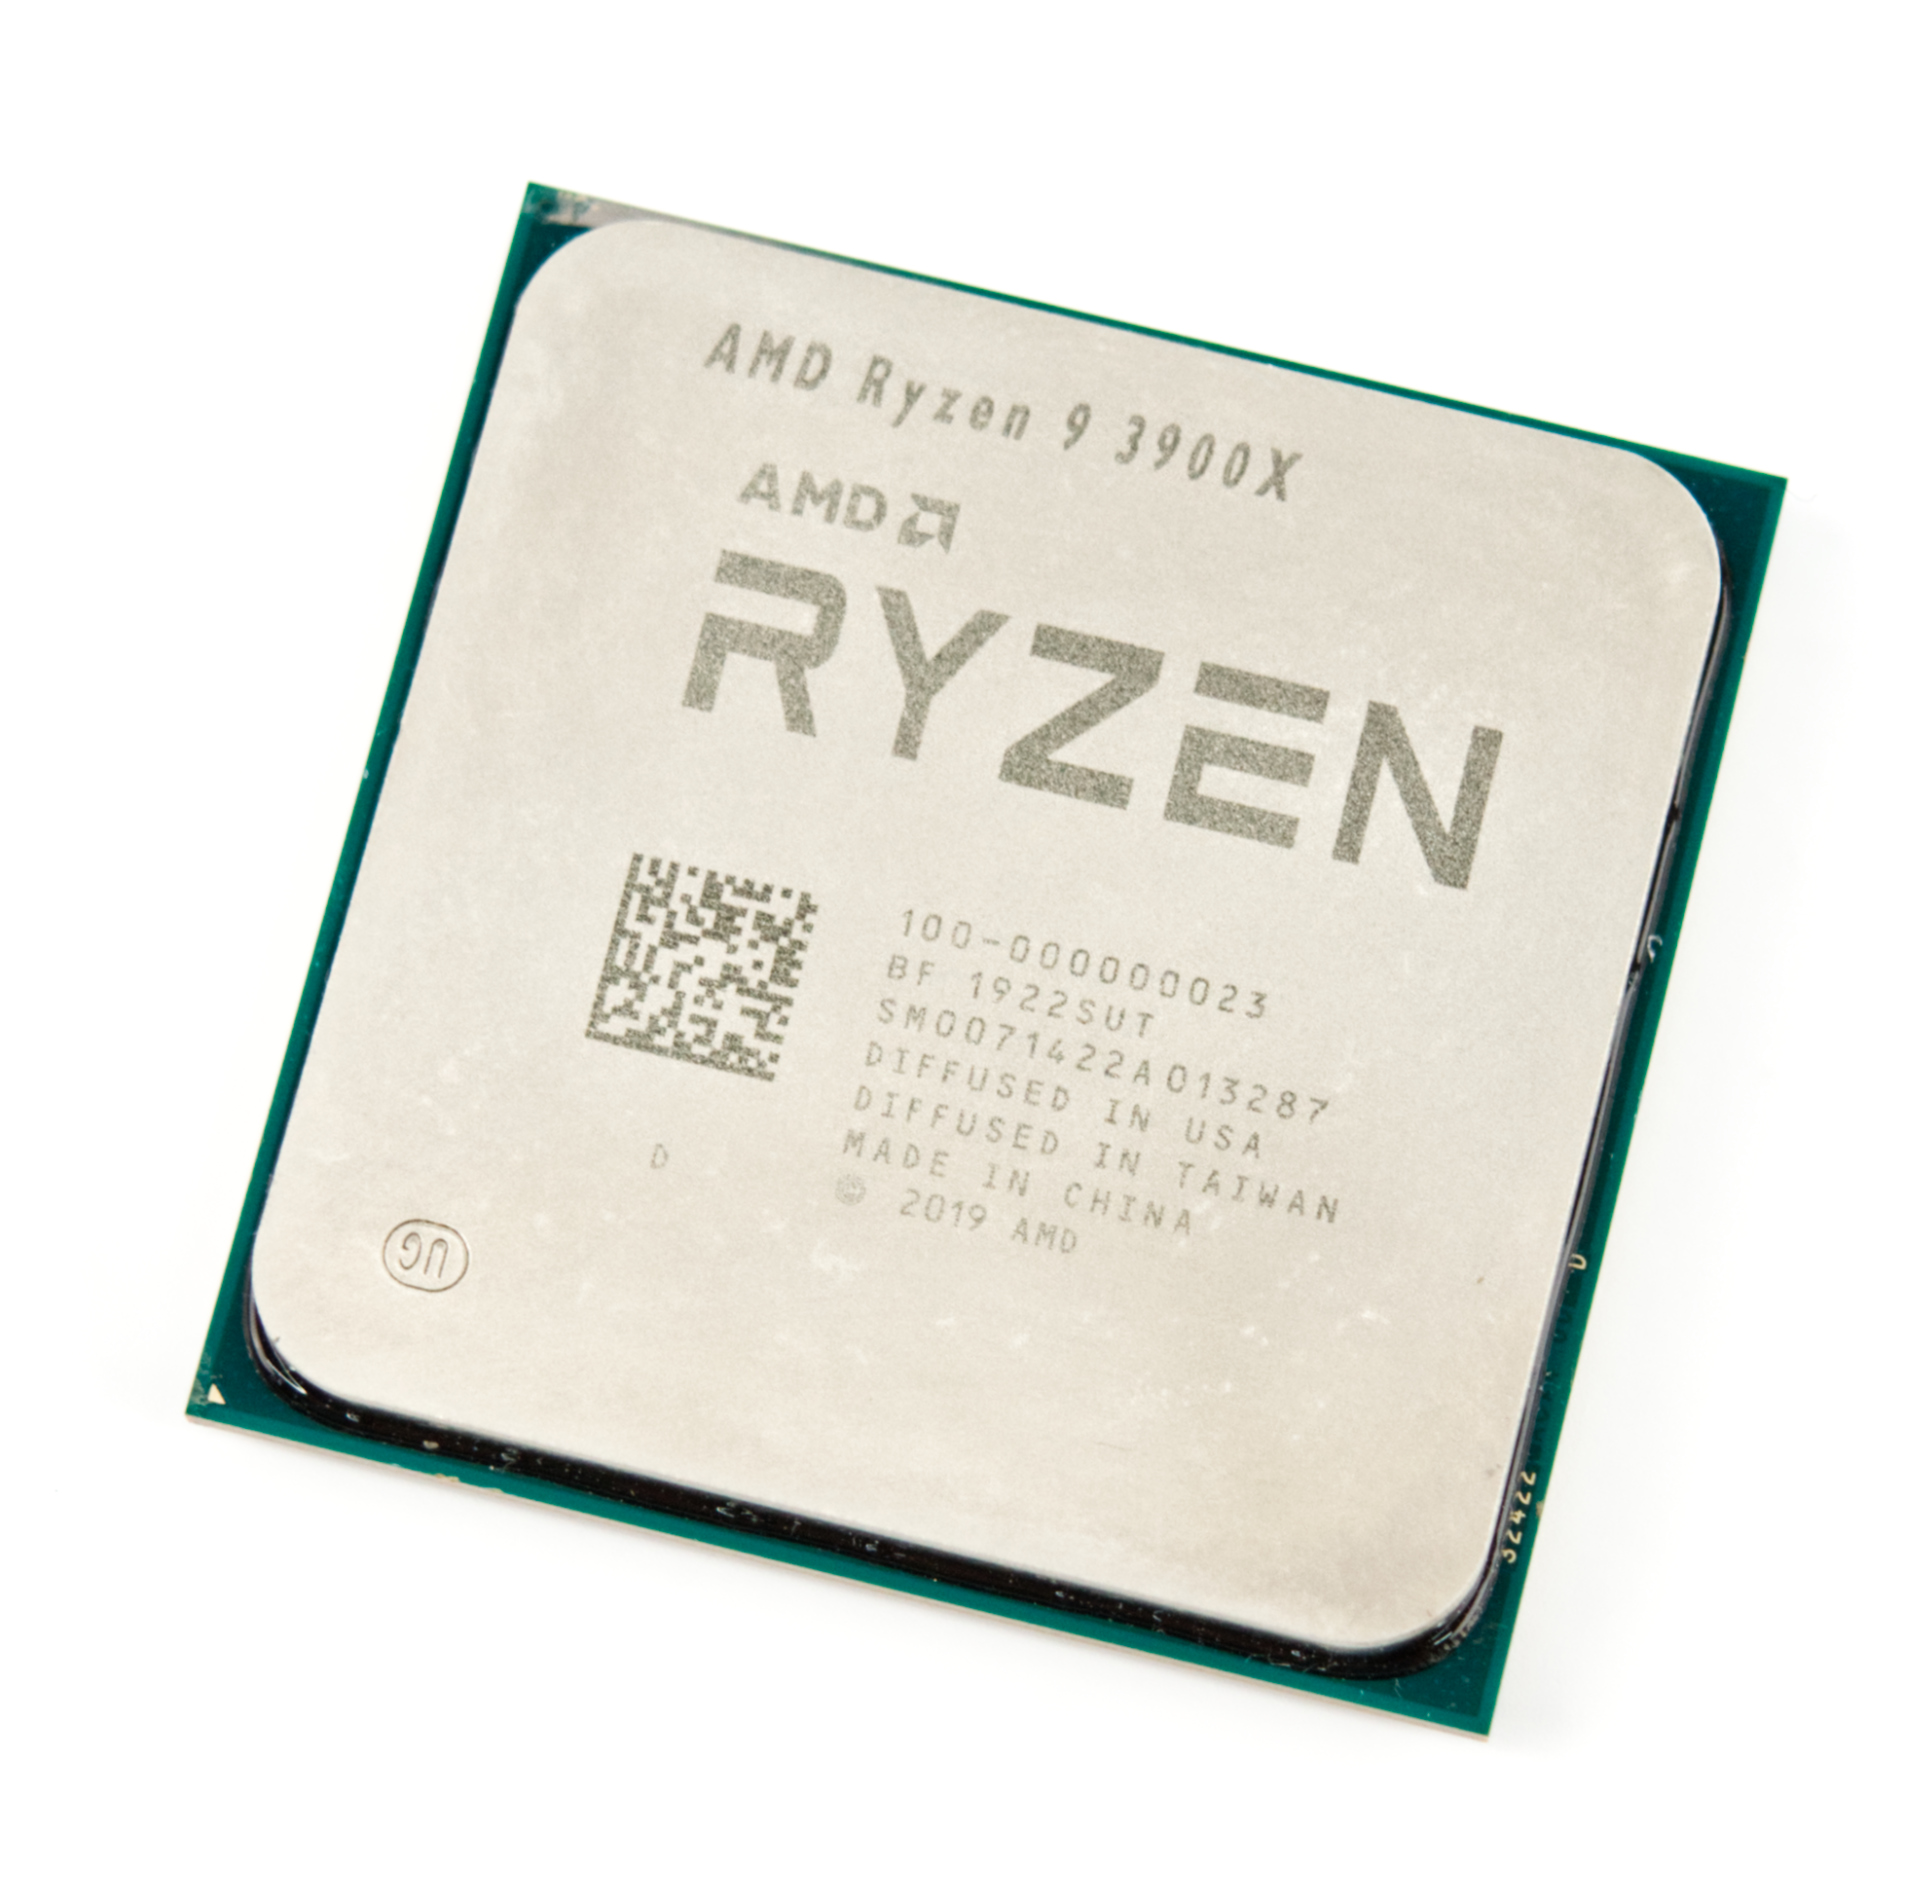 AMD Ryzen 9 3900X Desktop CPU Review: 12 cores meet Socket AM4